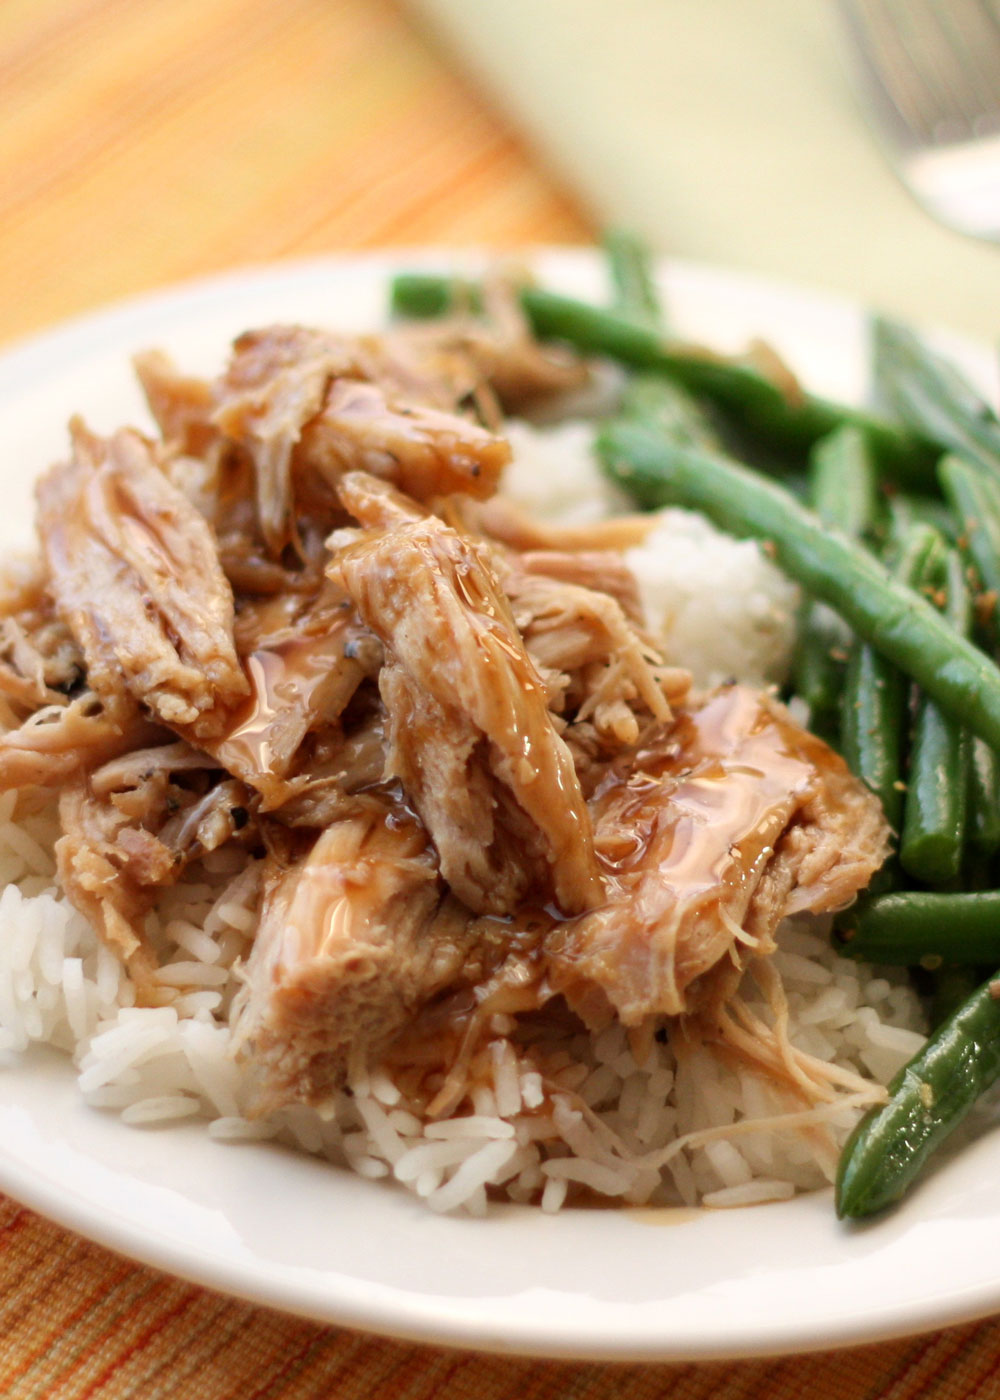 Slow Cooked Pork Roast with a Sweet Tangy Glaze ~ perfect for company or a lazy weeknight dinner!